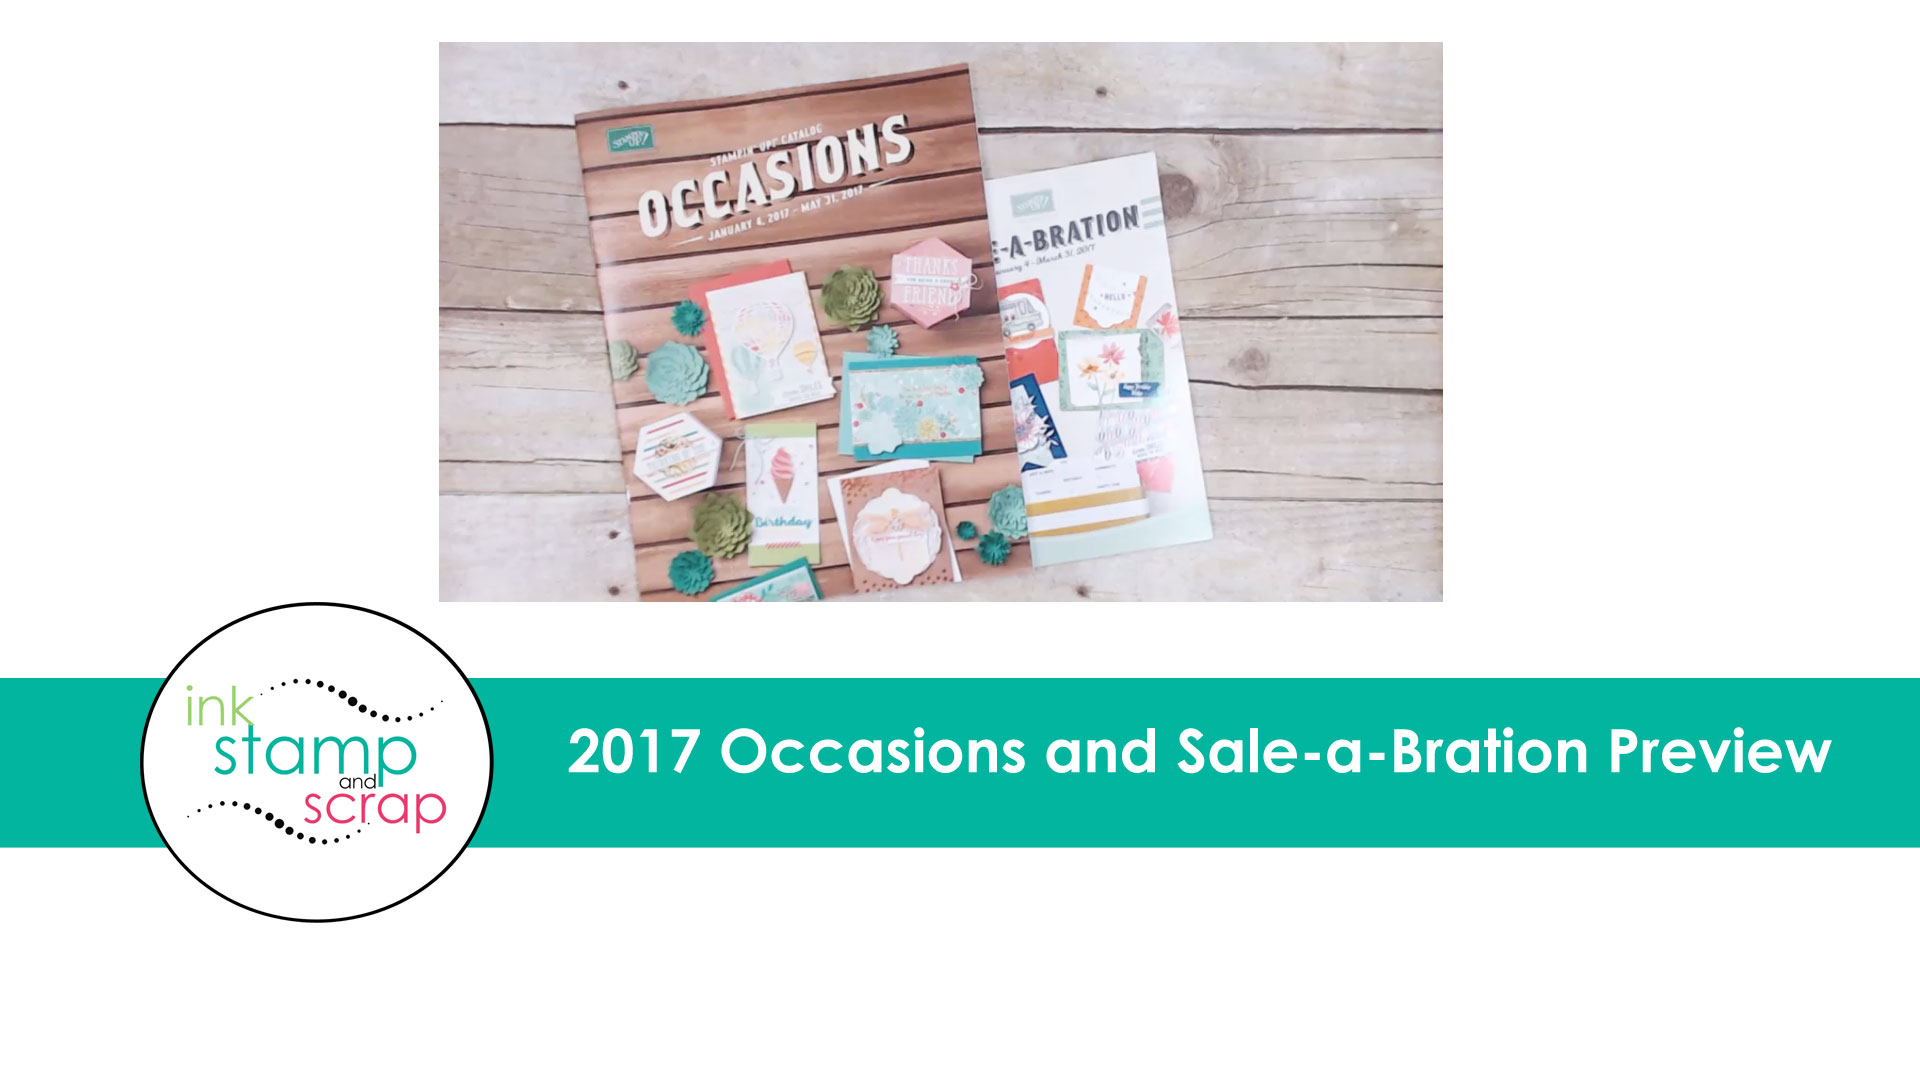 2017 Occasions and Sale-a-Bration Preview